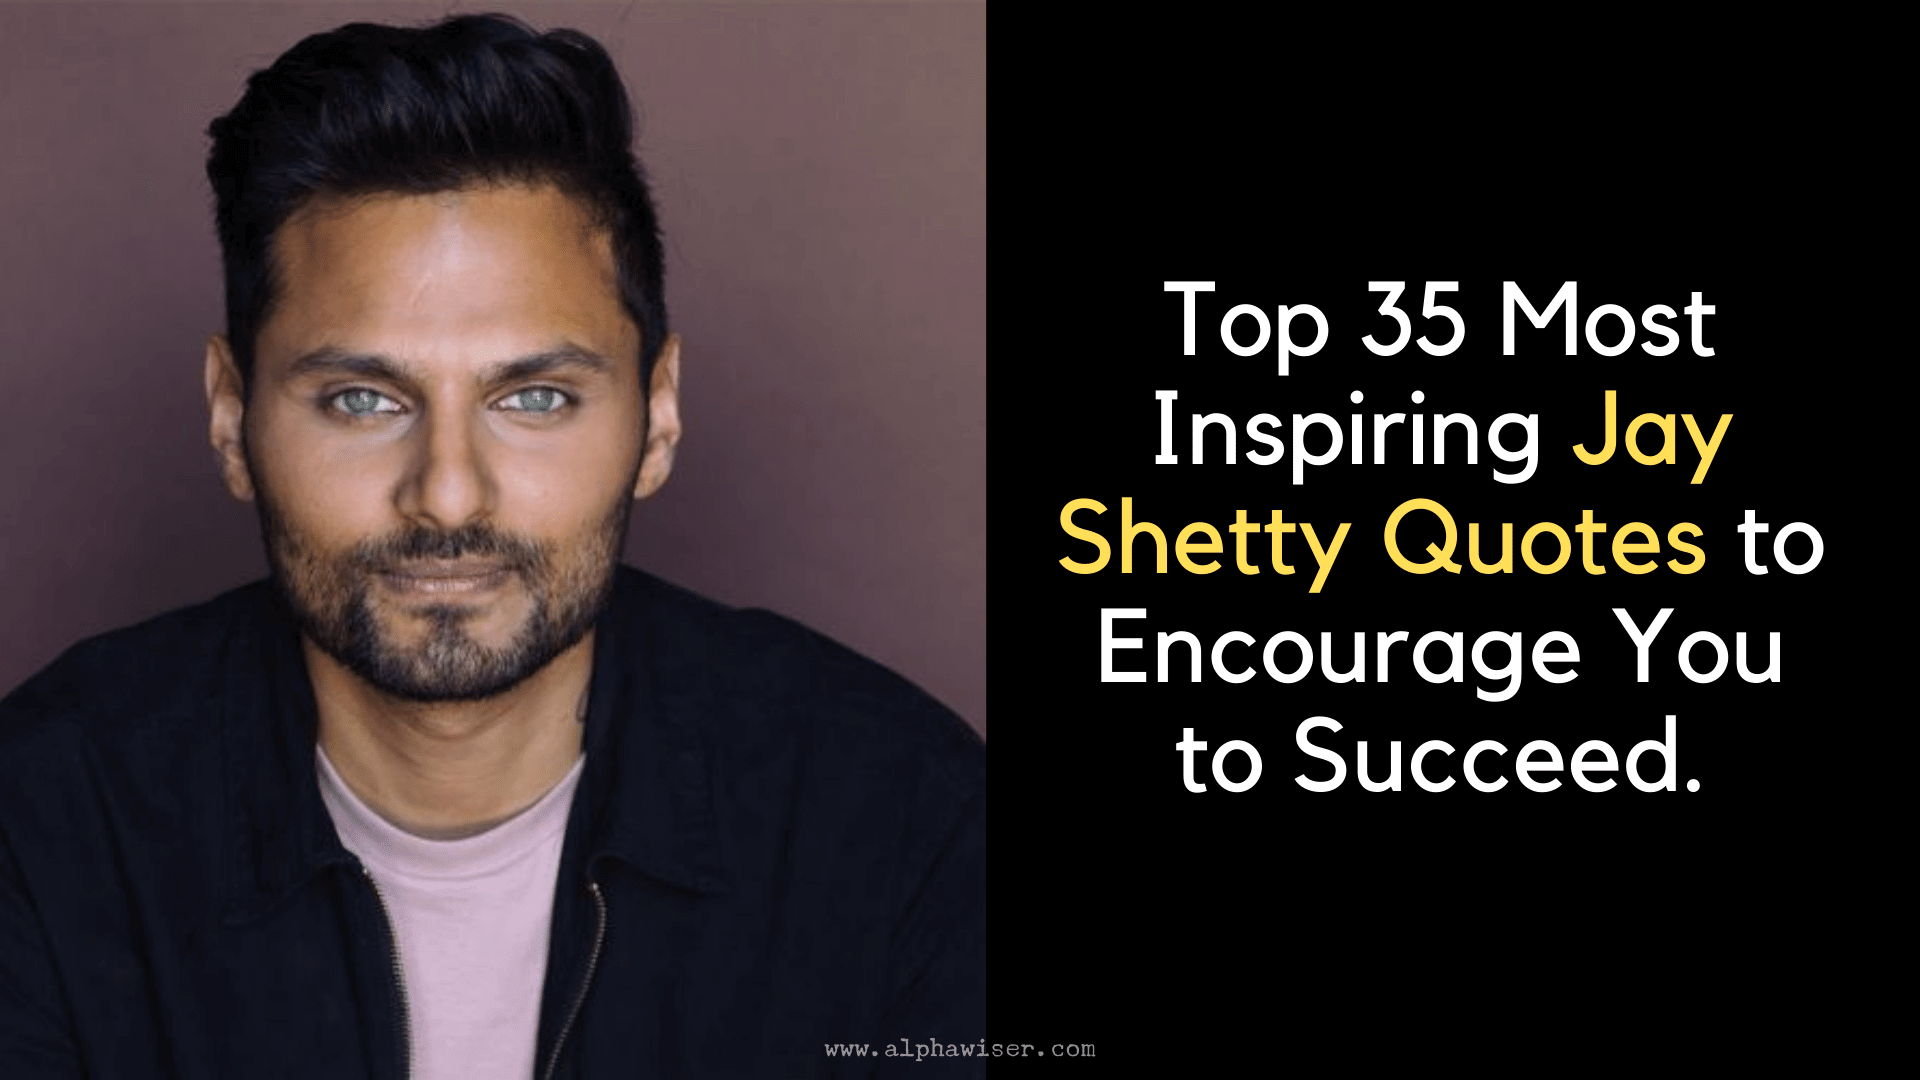 Top 35 Most Inspiring Jay Shetty Quotes to Encourage You to Succeed. (1)